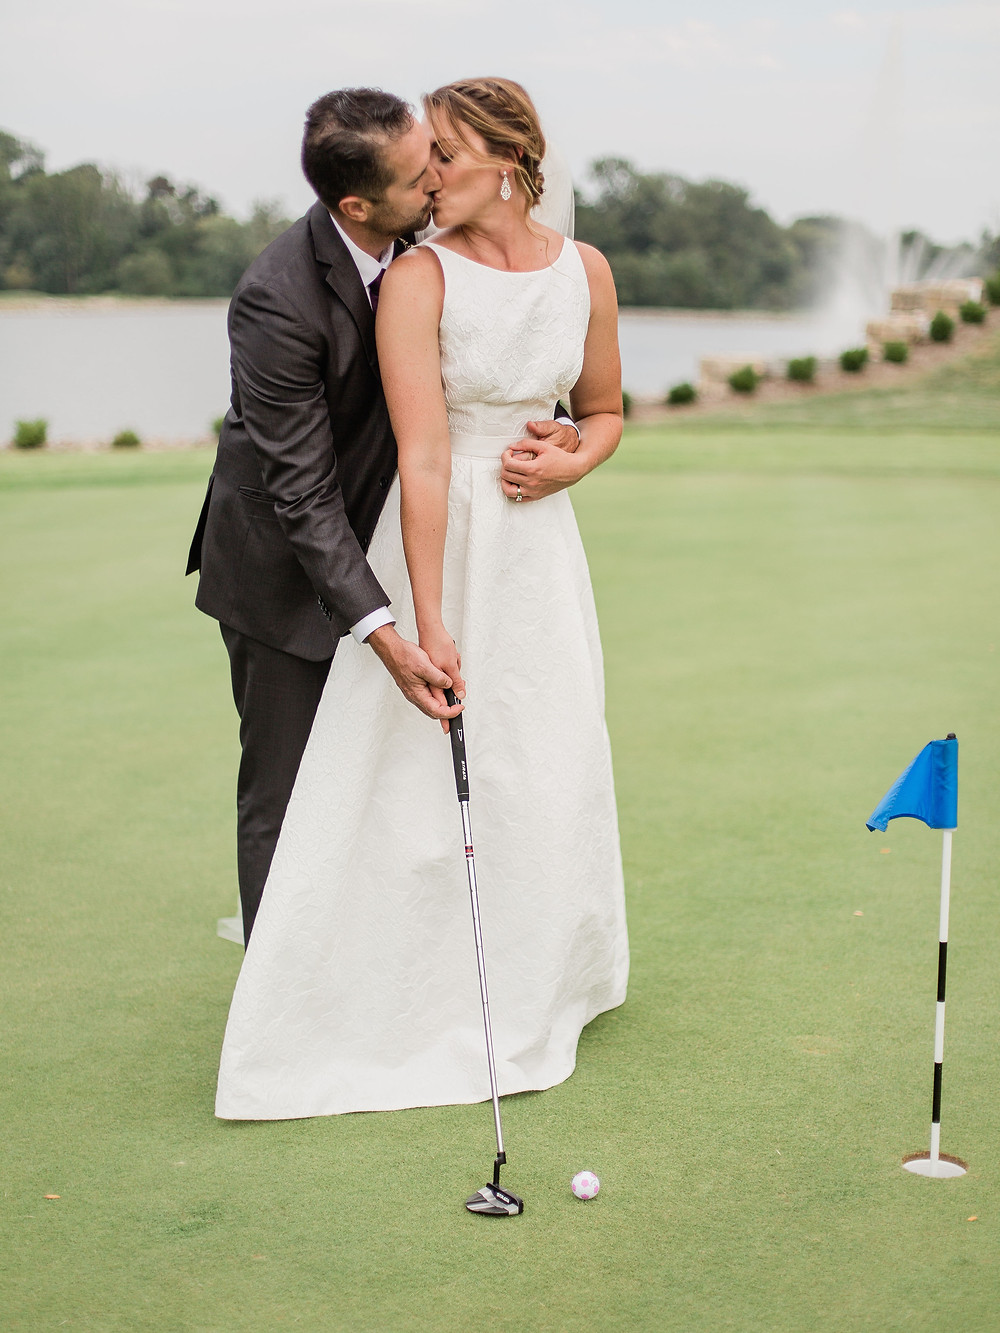 wedding at water's edge golf course in st. charles mo